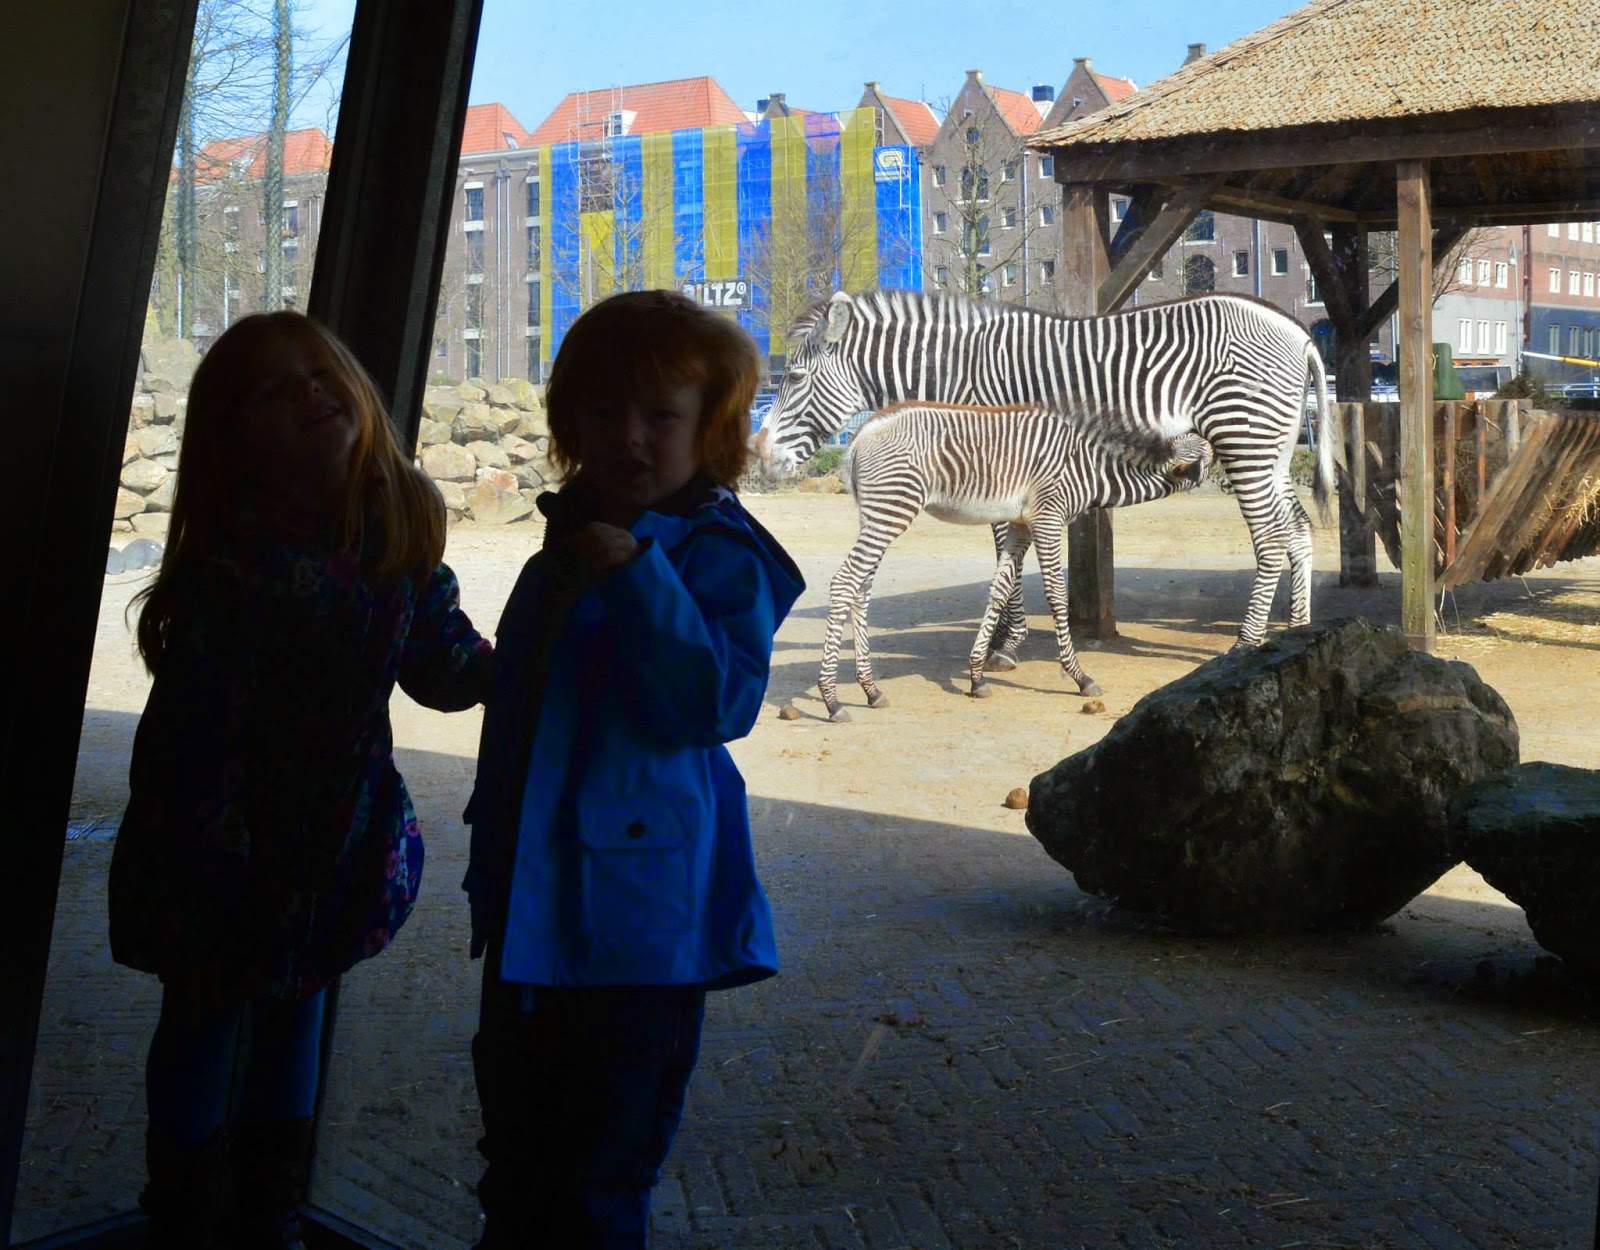 Zebras at Amsterdam zoo